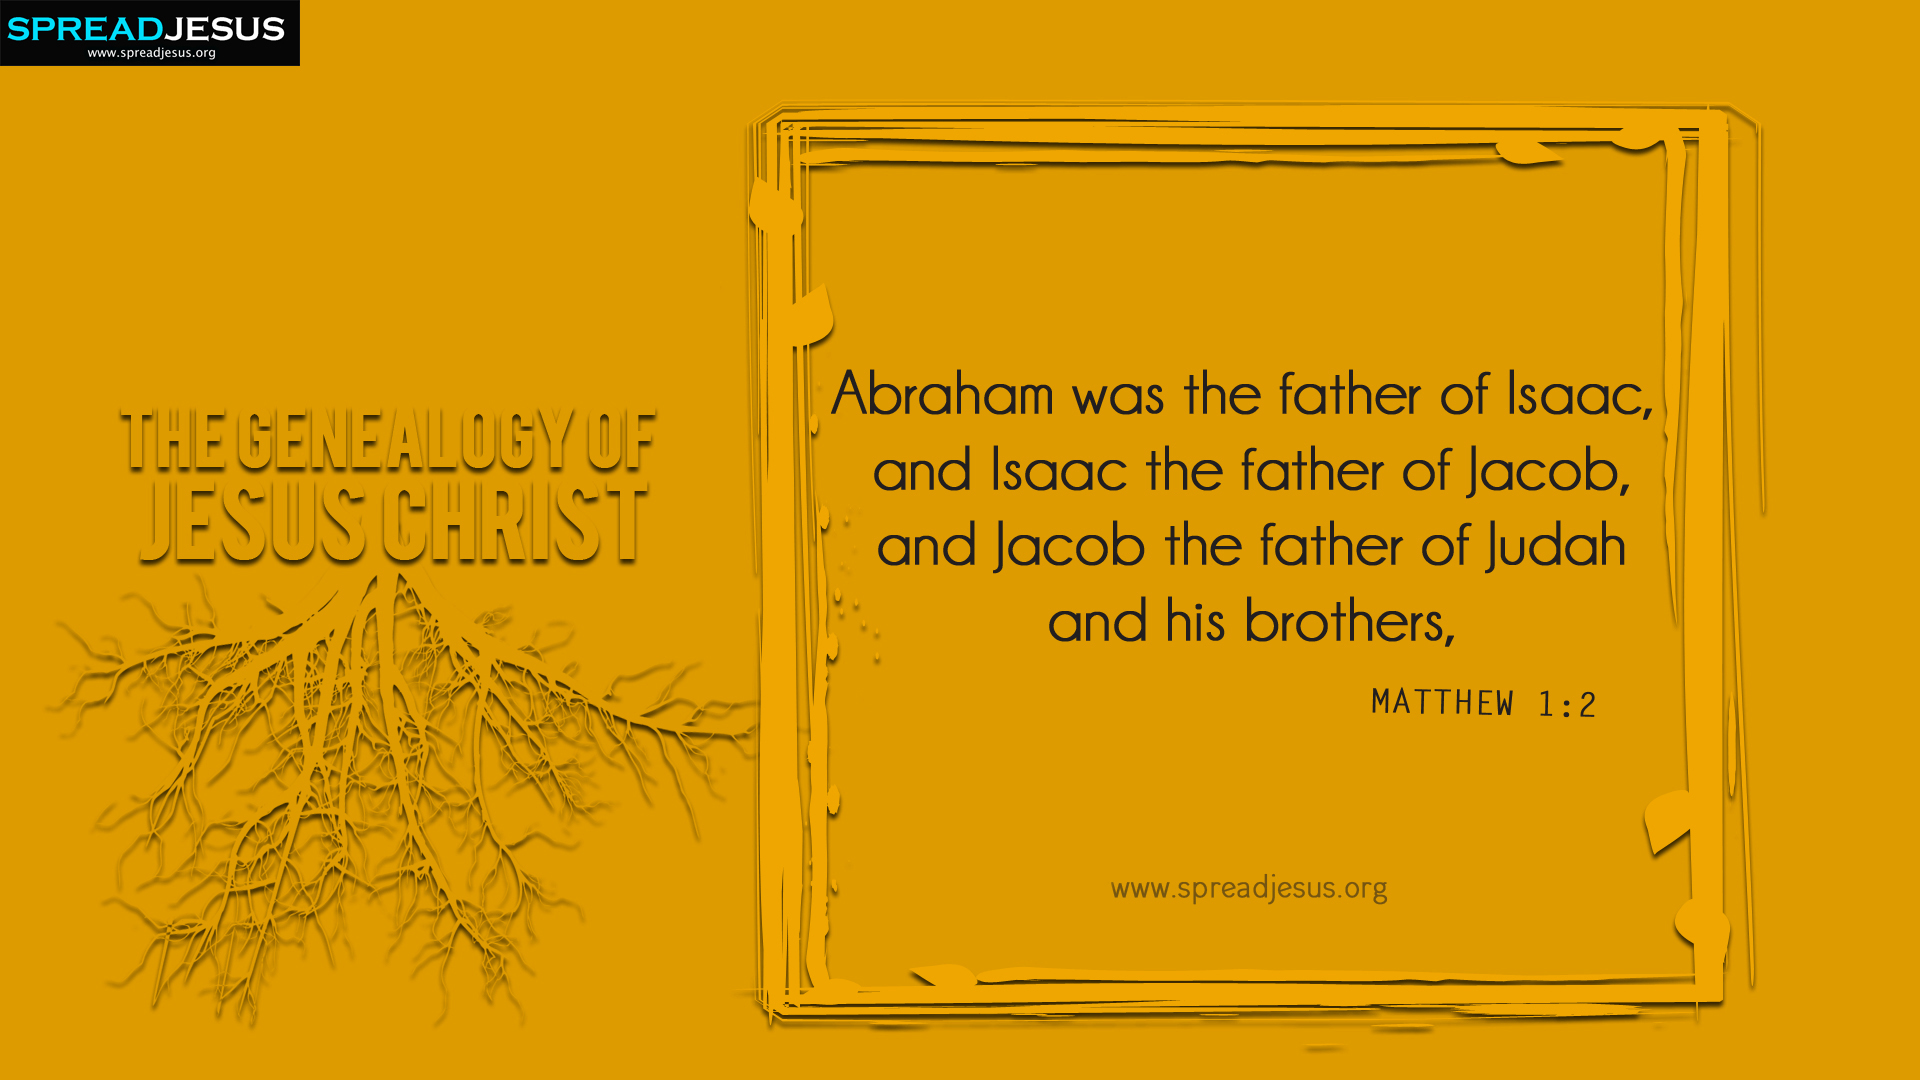 The Genealogy of Jesus Christ Matthew 1:2 HD-Wallpapers